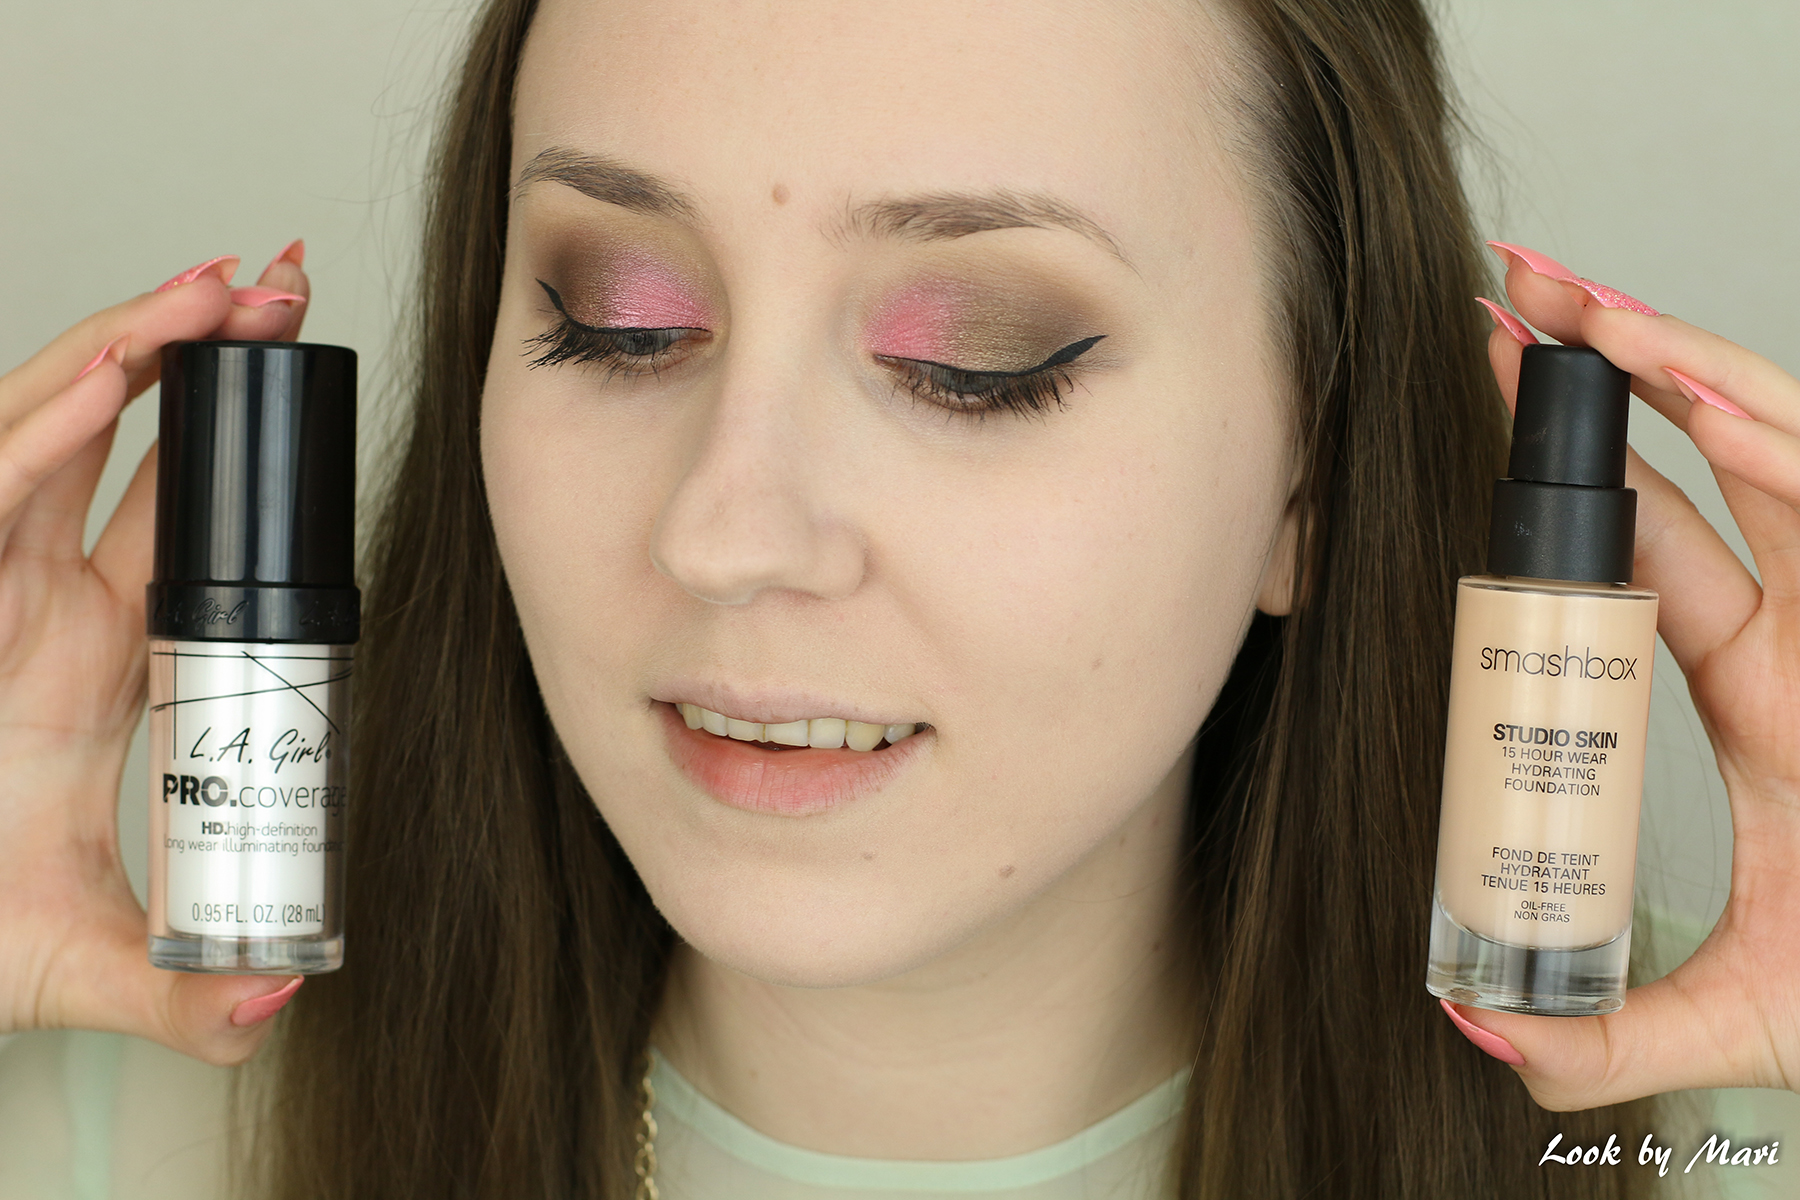 8 smashbox studio skin 15 hour wear hydrating foundation review kokemuksia 0.5 meikkivoide